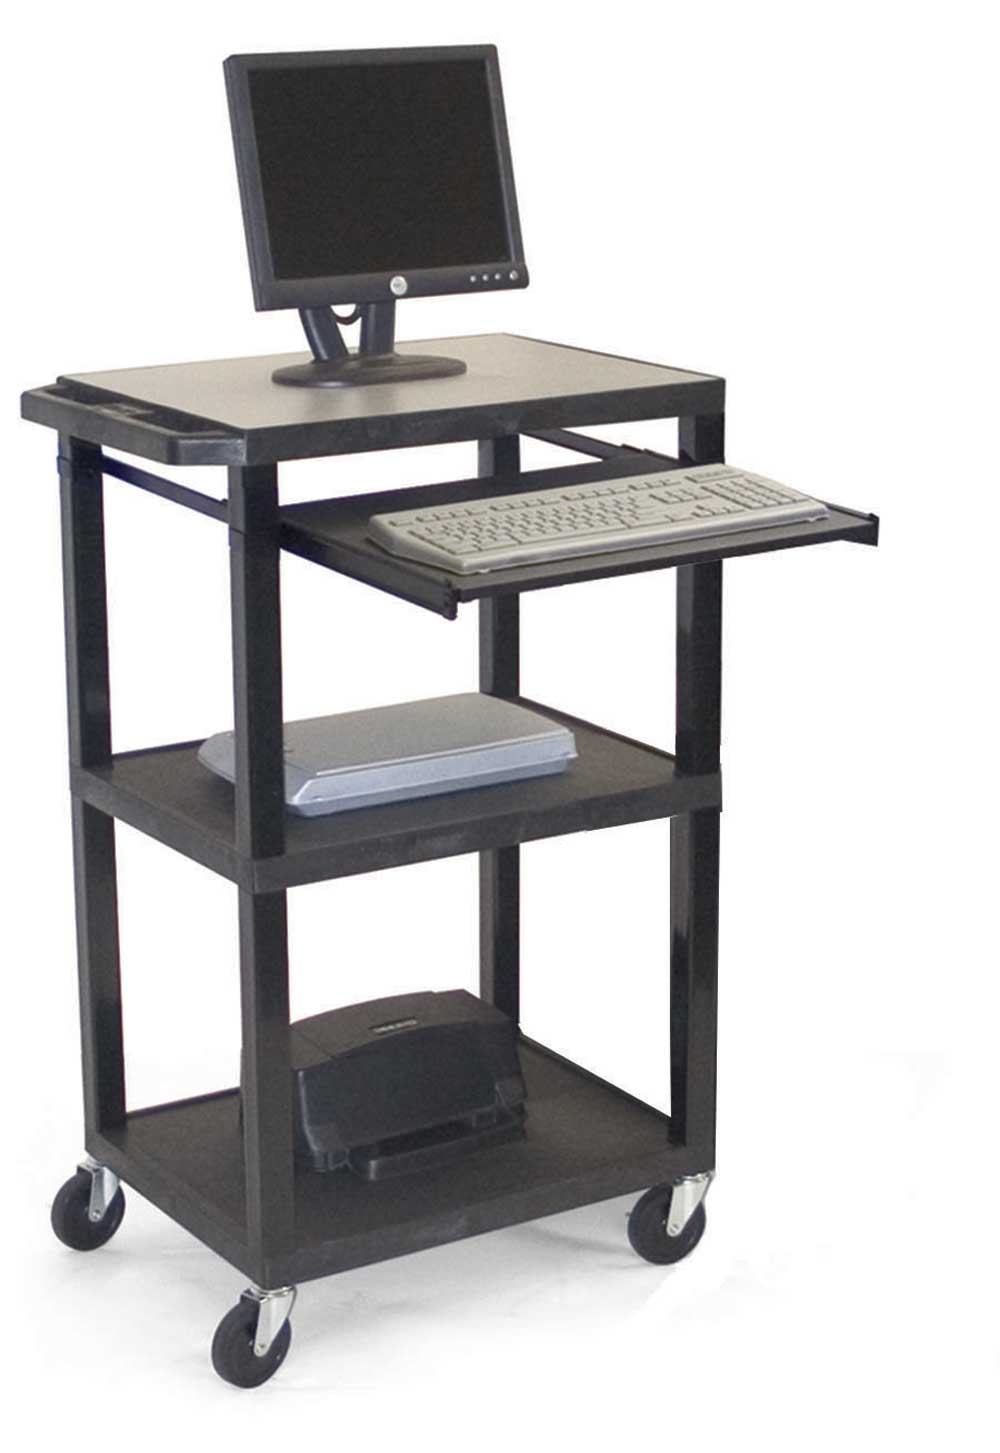 H Wilson Black Computer Workstation with Micro 3 Shelf